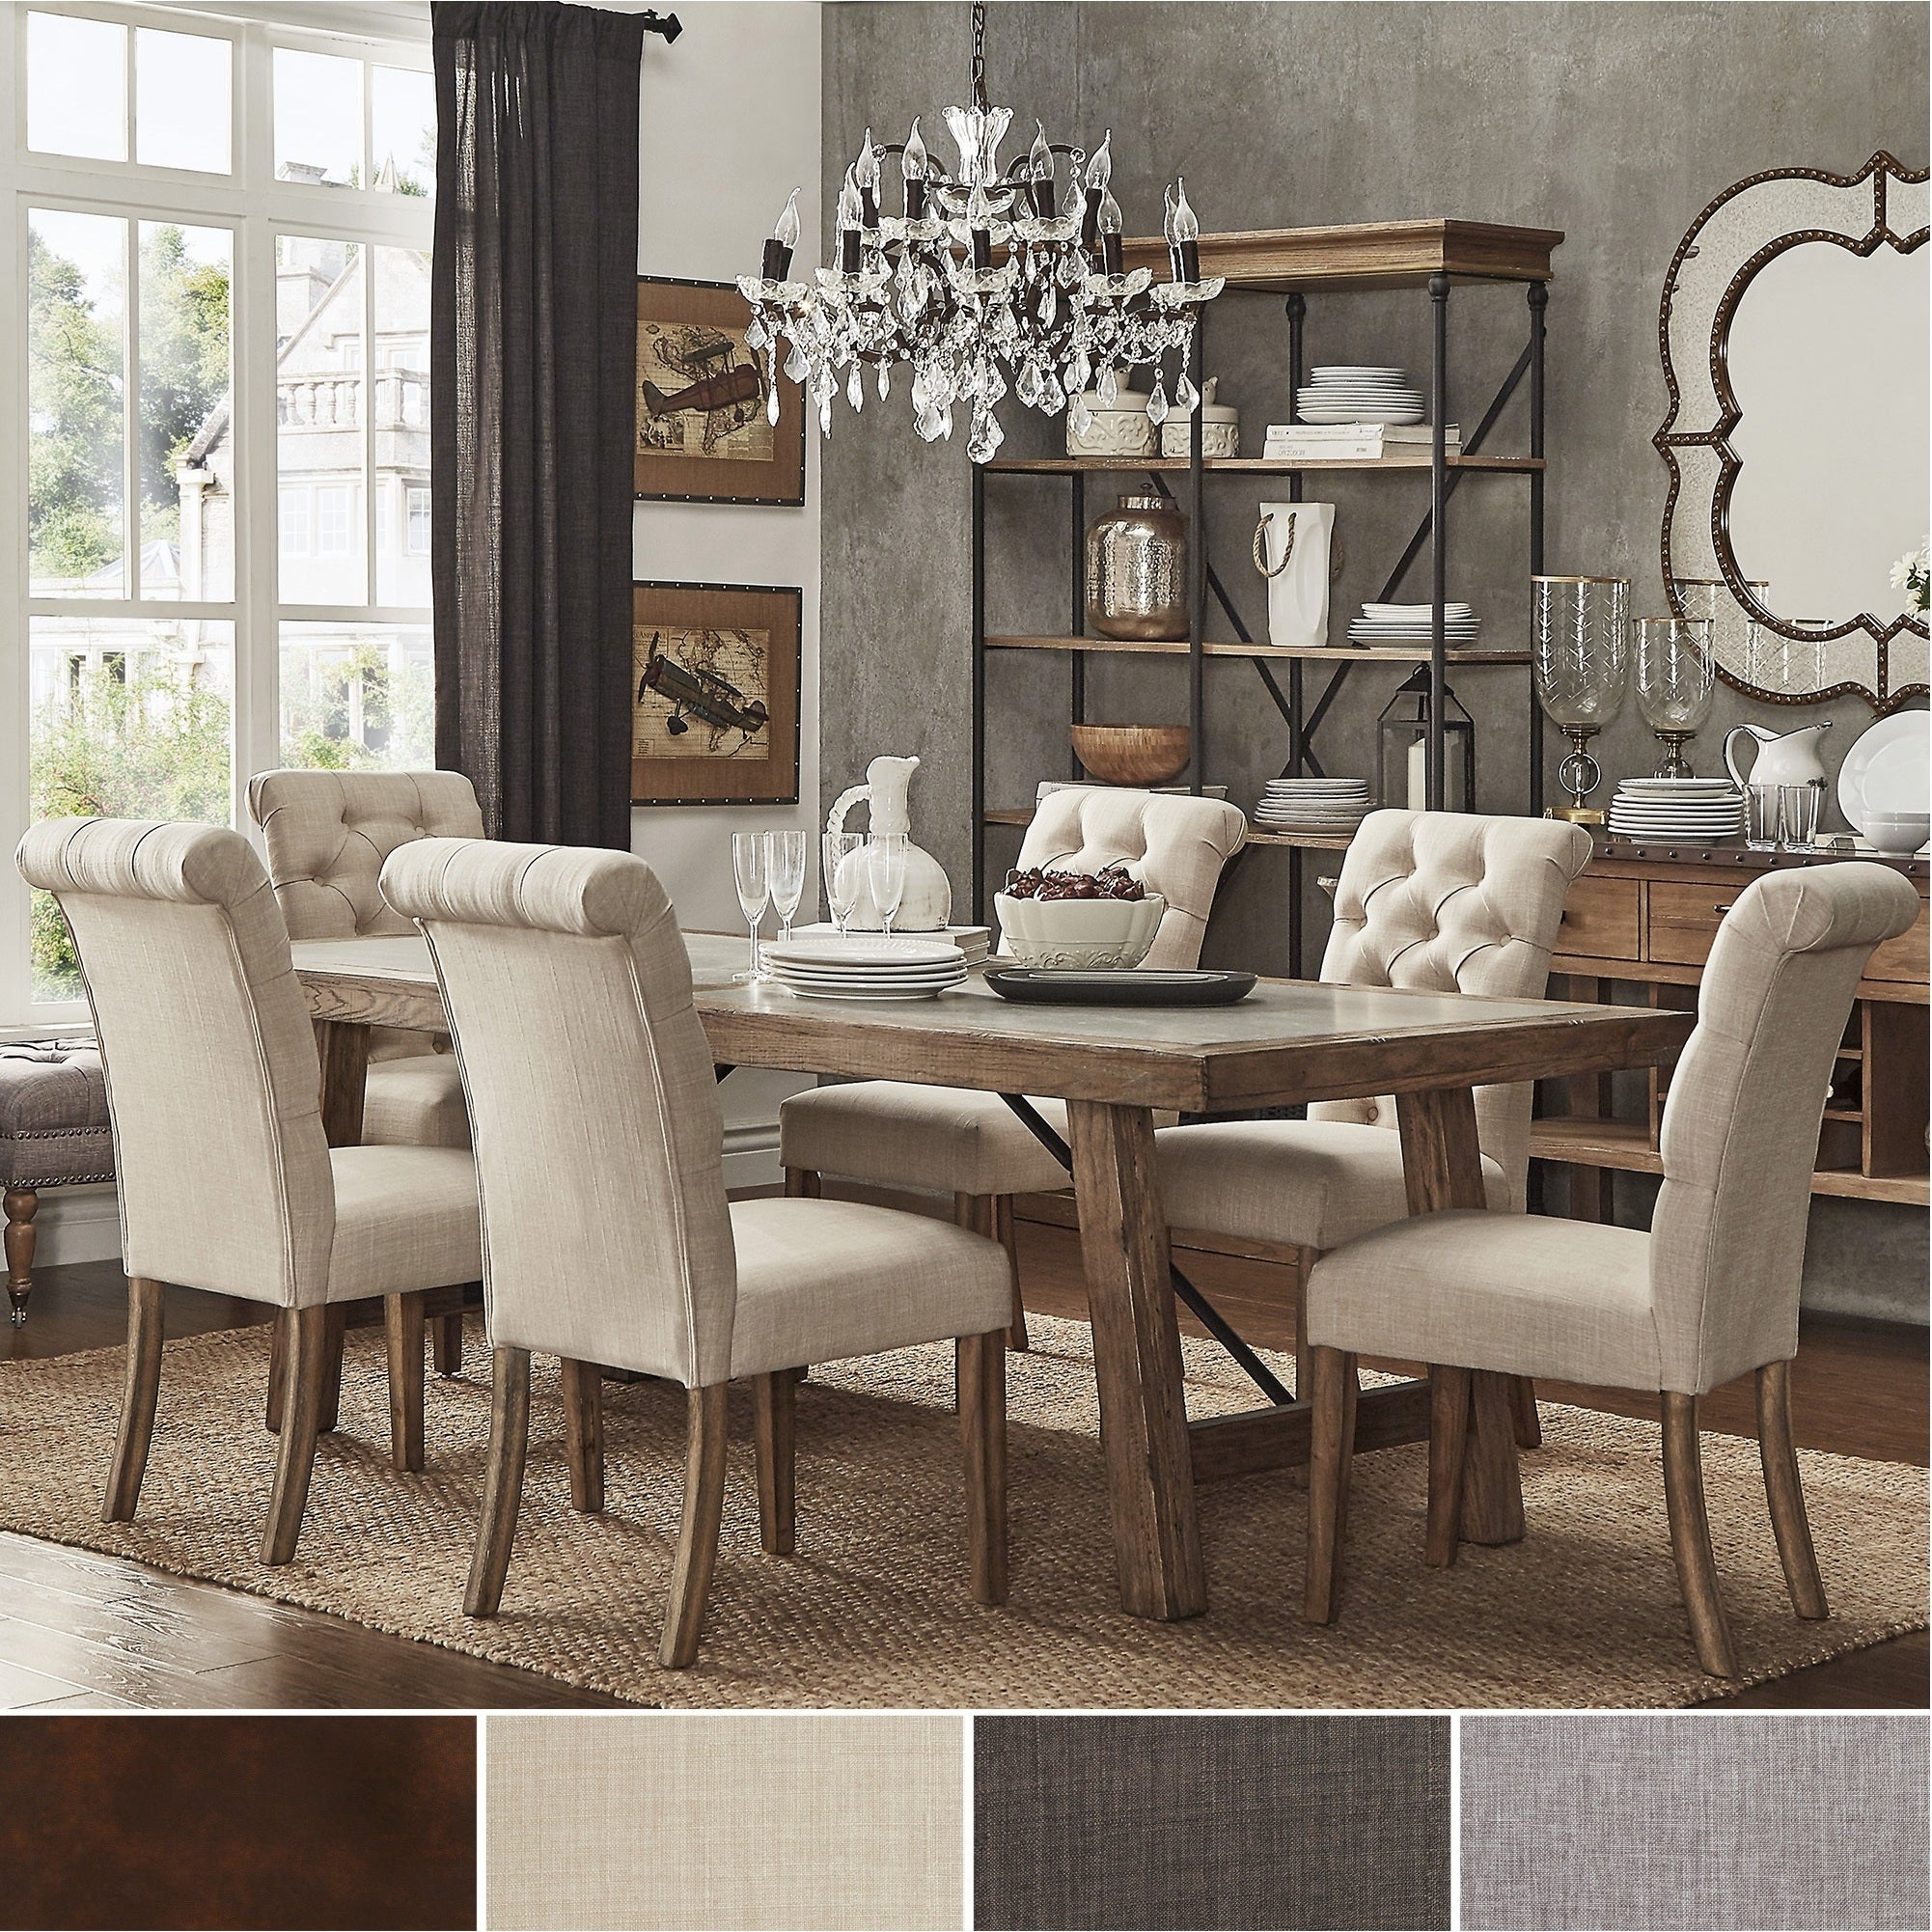 Buy 6 Piece Sets Kitchen & Dining Room Sets Online At Overstock With Regard To Recent Osterman 6 Piece Extendable Dining Sets (Set Of 6) (View 6 of 20)